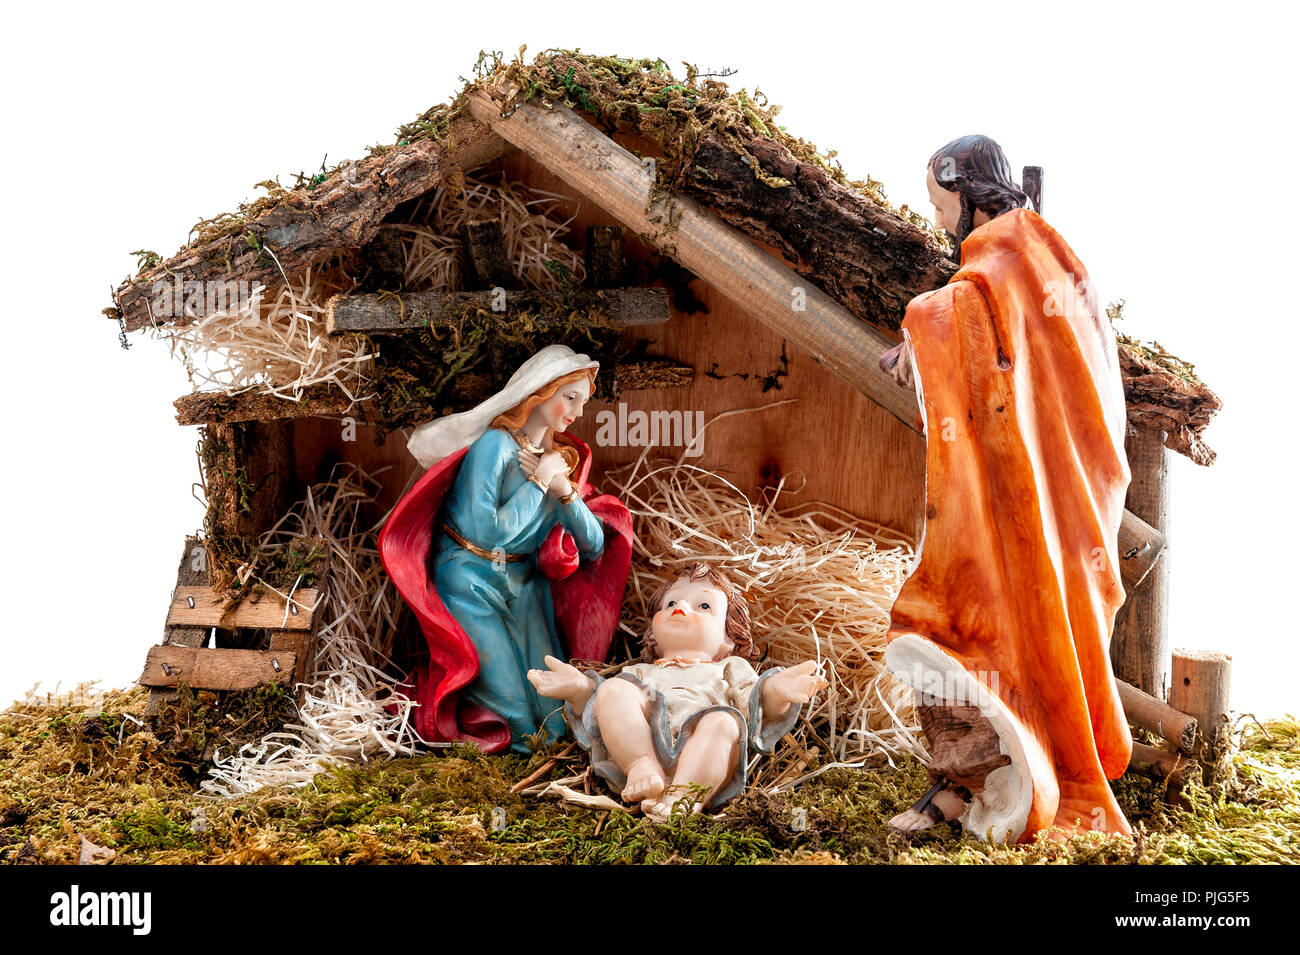 Christmas nativity scene. Hut with baby Jesus in the manger, with Mary and Joseph. Isolated on white background. Stock Photo